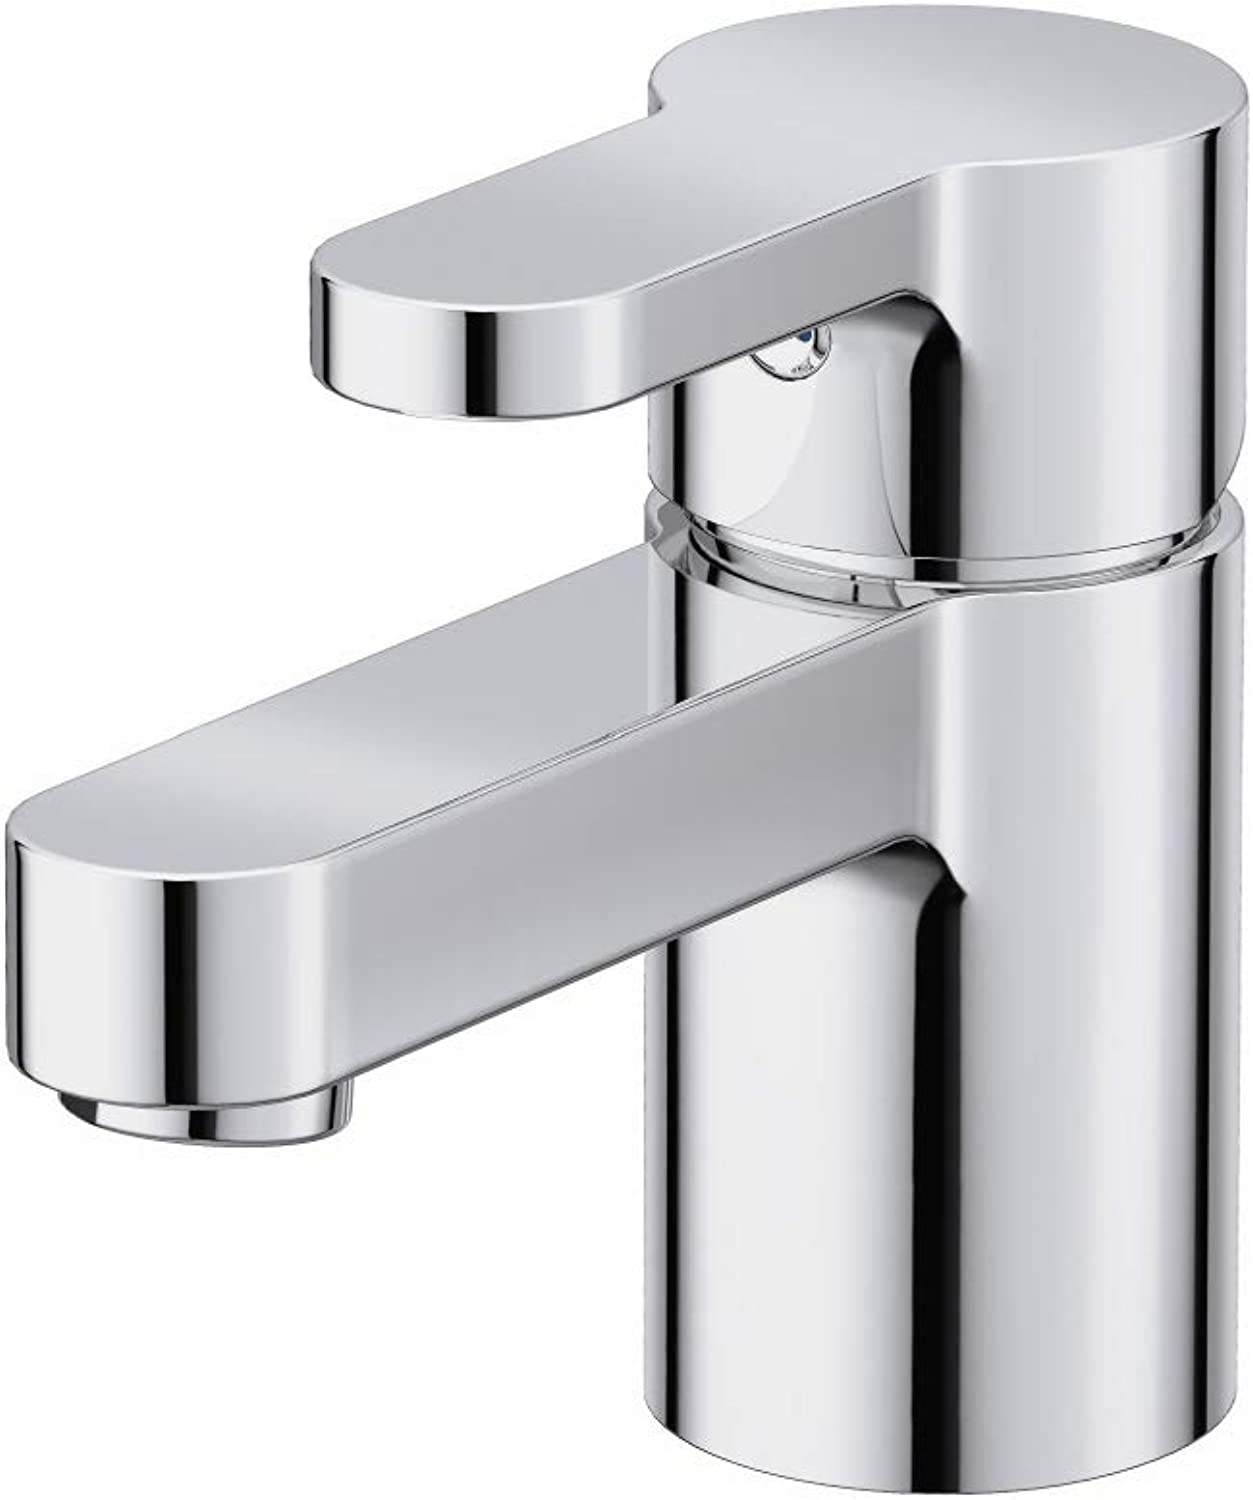 ENSEN Wash-Basin Mixer tap with Strainer Chrome-Plated